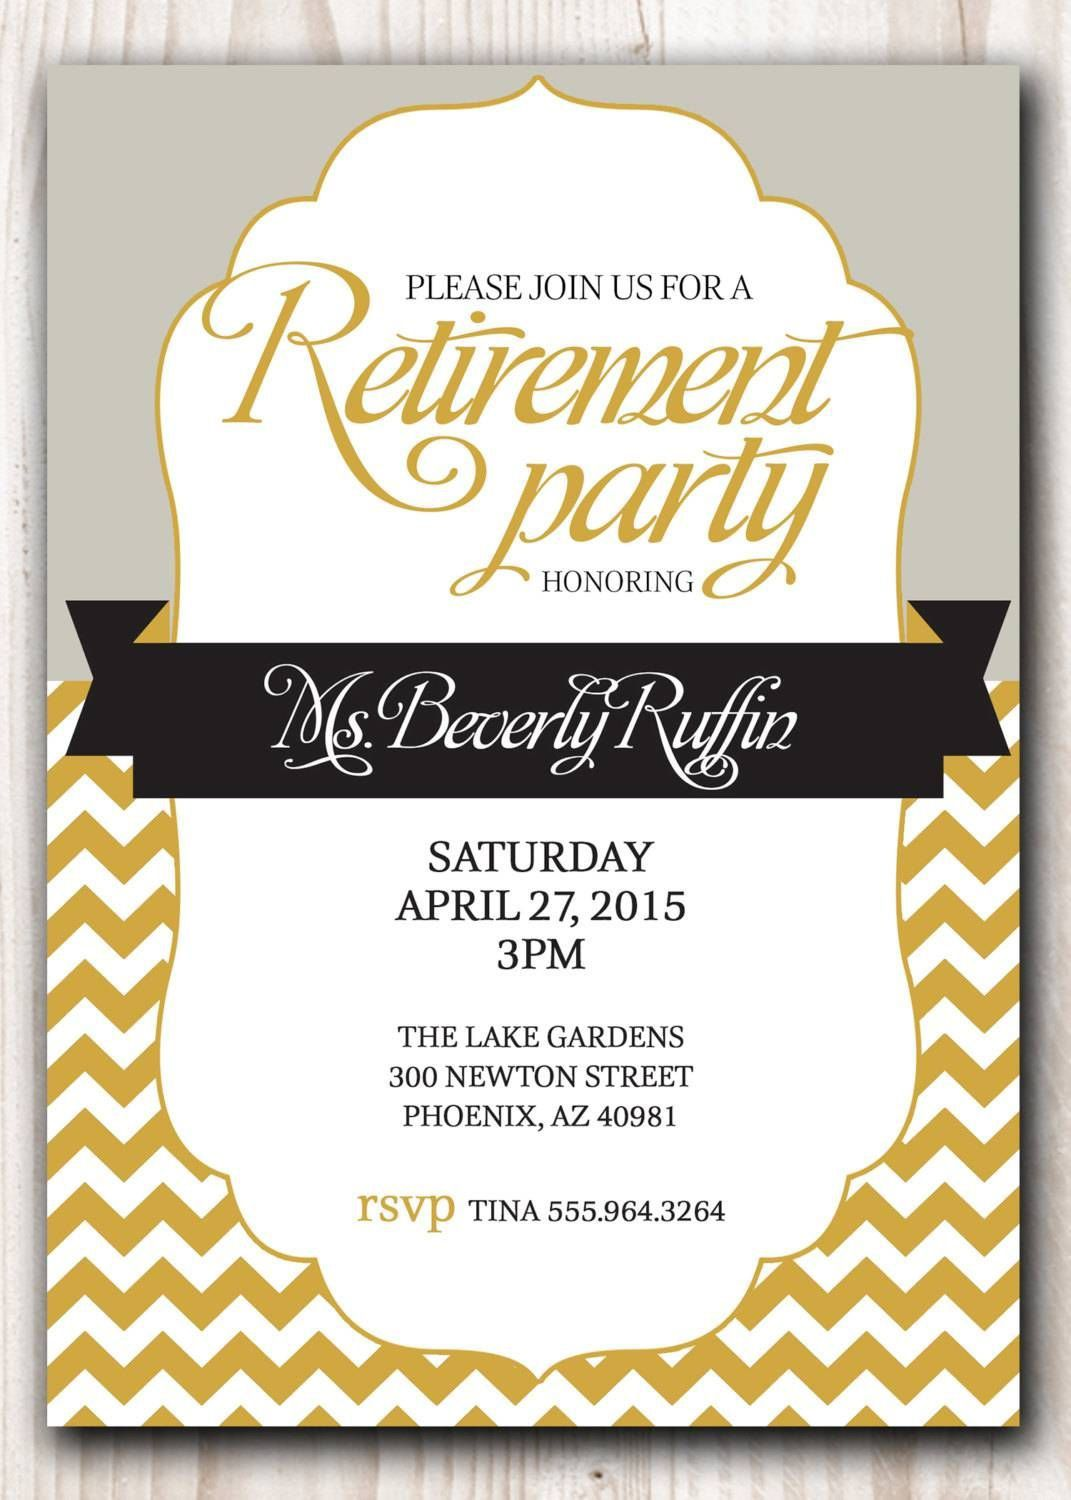 008 Incredible Retirement Party Invite Template Word Free Design Full